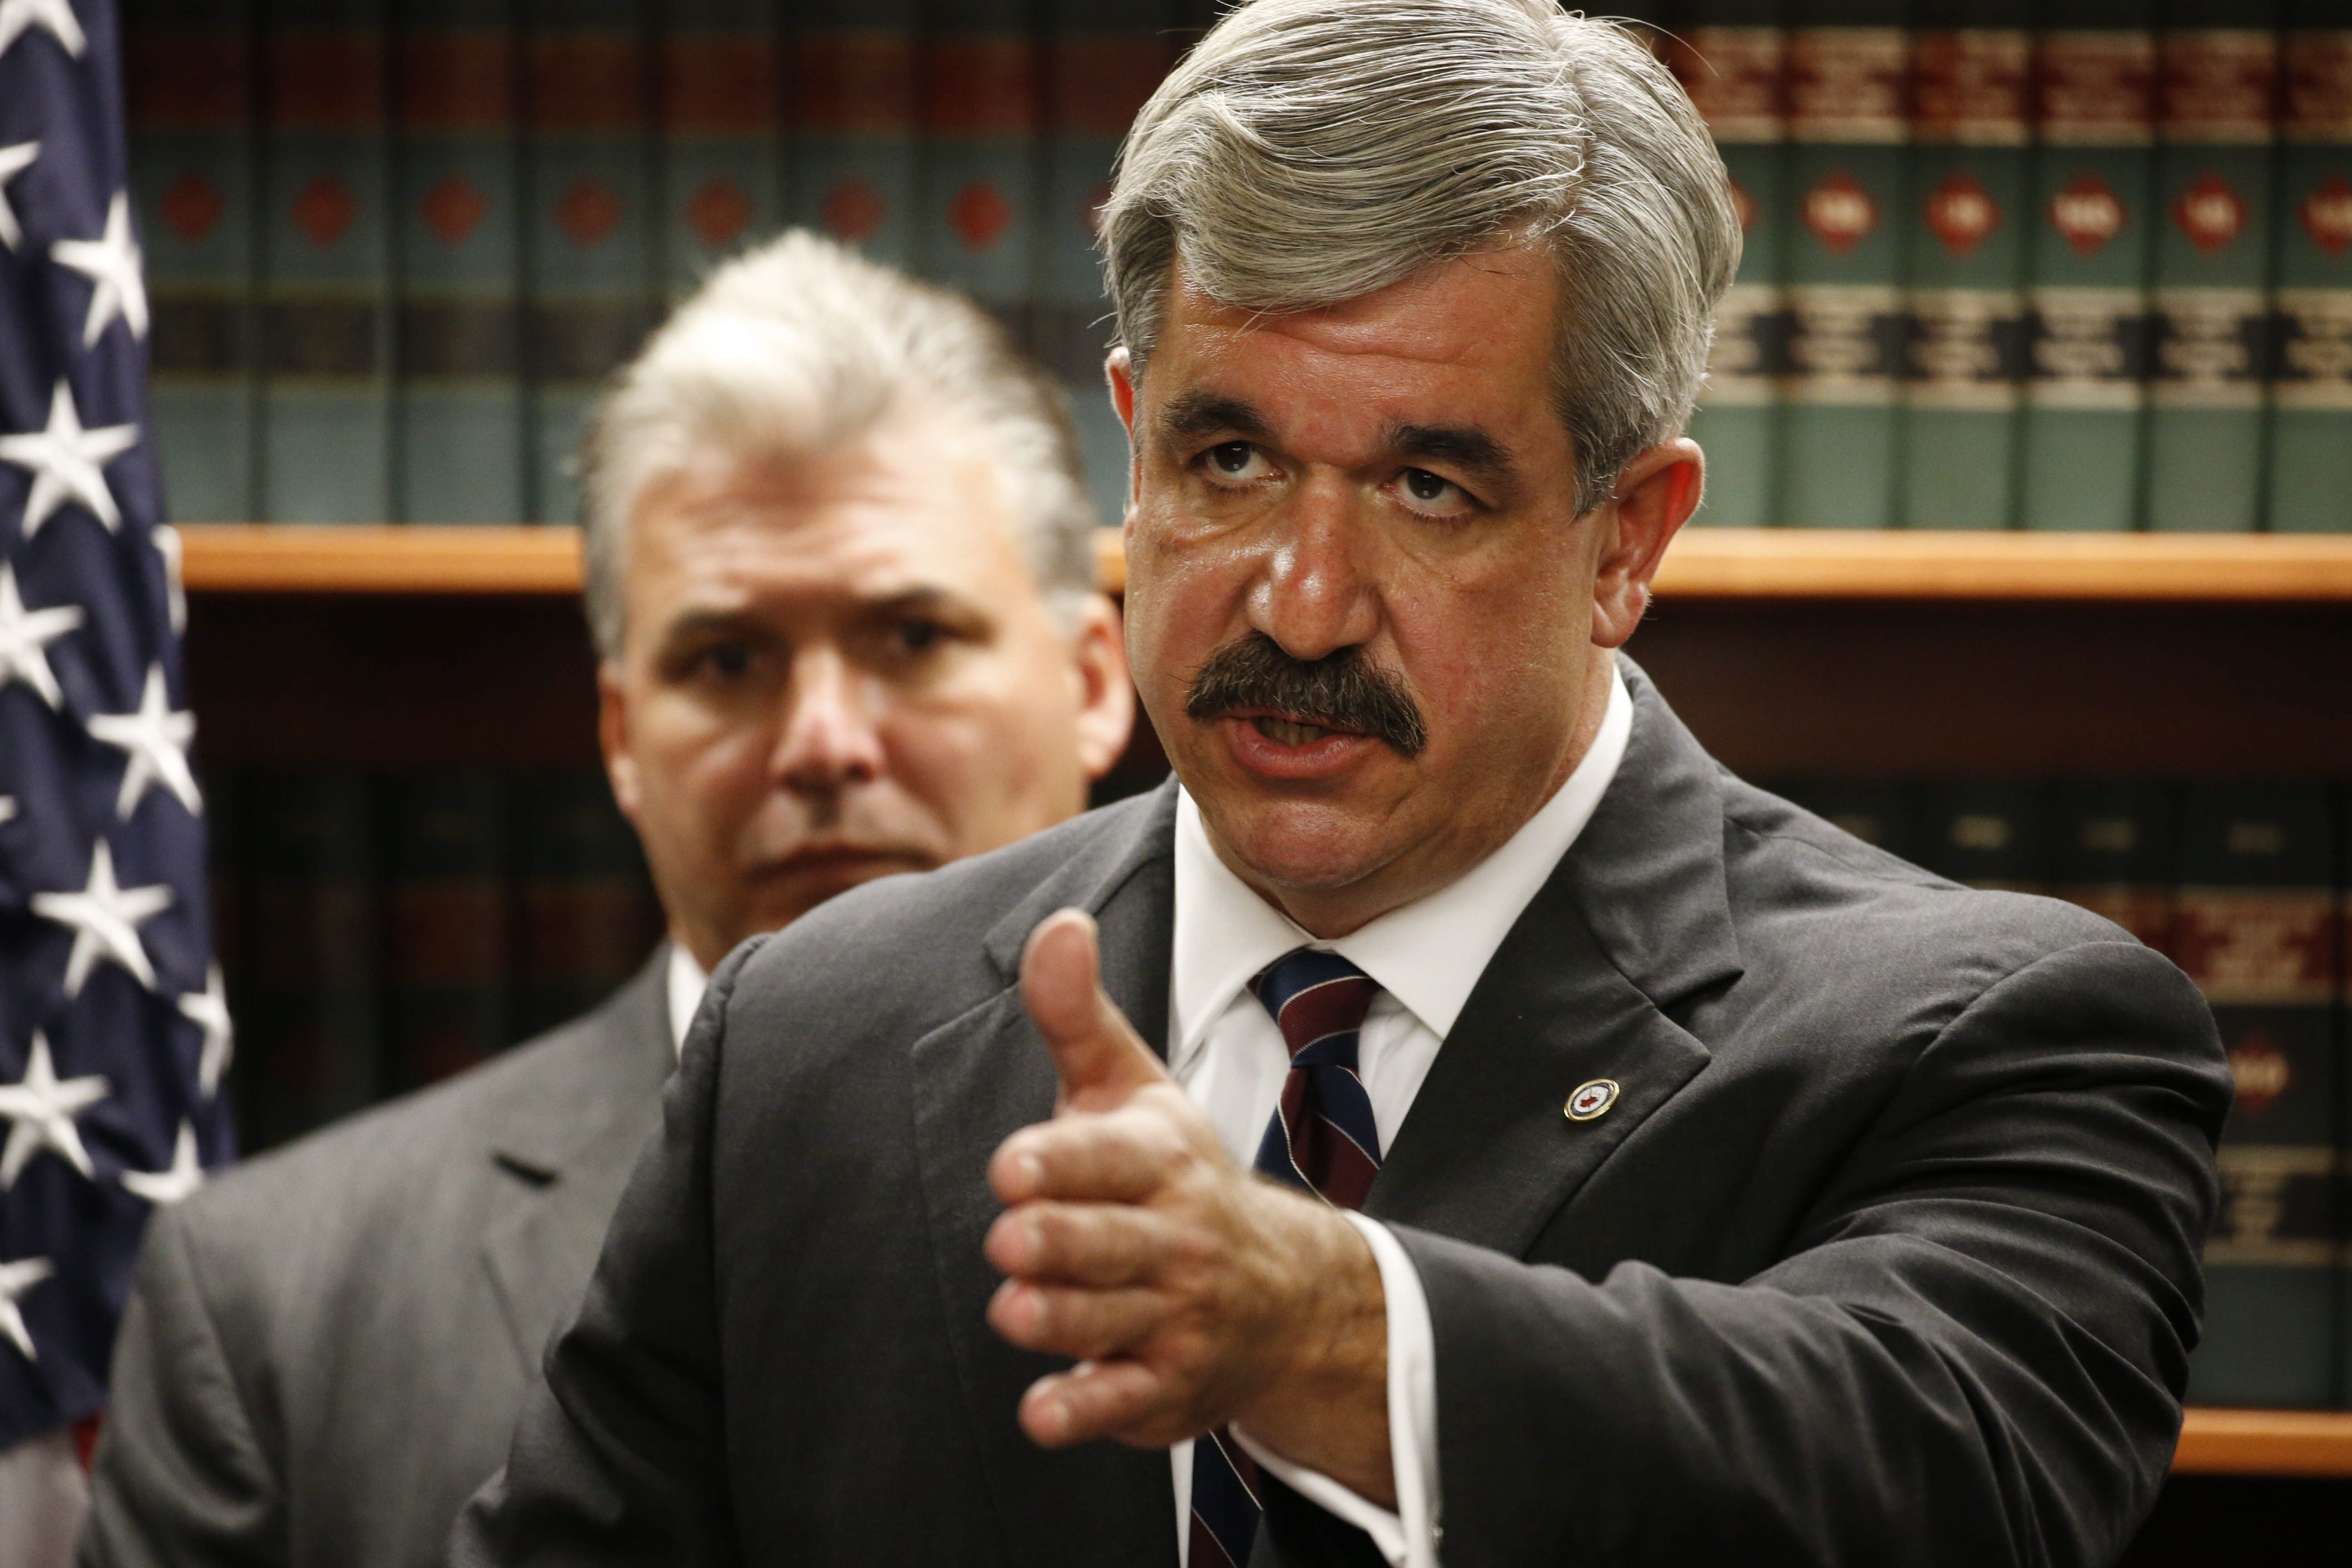 Former Erie County District Attorney Frank Sedita III was asked to go after political operative G. Steven Pigeon, but he said such action wasn't warranted.